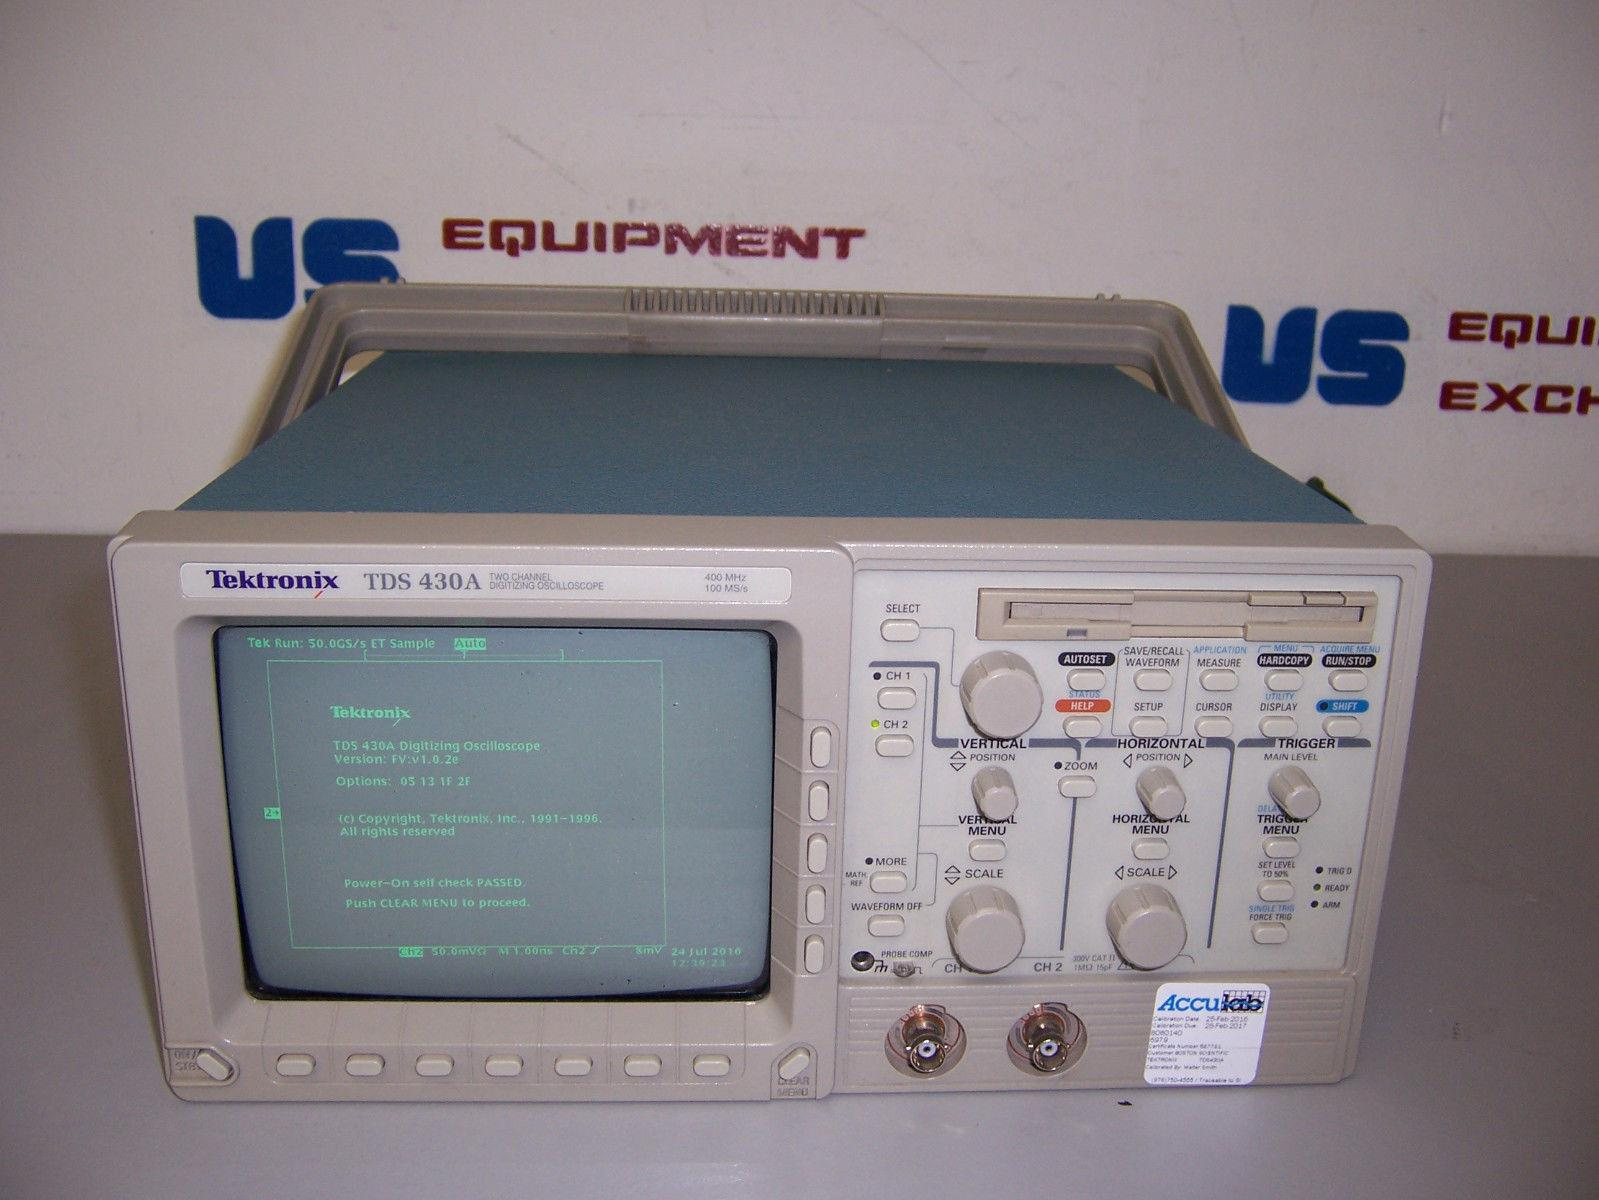 9263 TEKTRONIX TDS430A OSCILLOSCOPE 2 CHANNEL DIGITIZING 400 MHZ 100MS/S